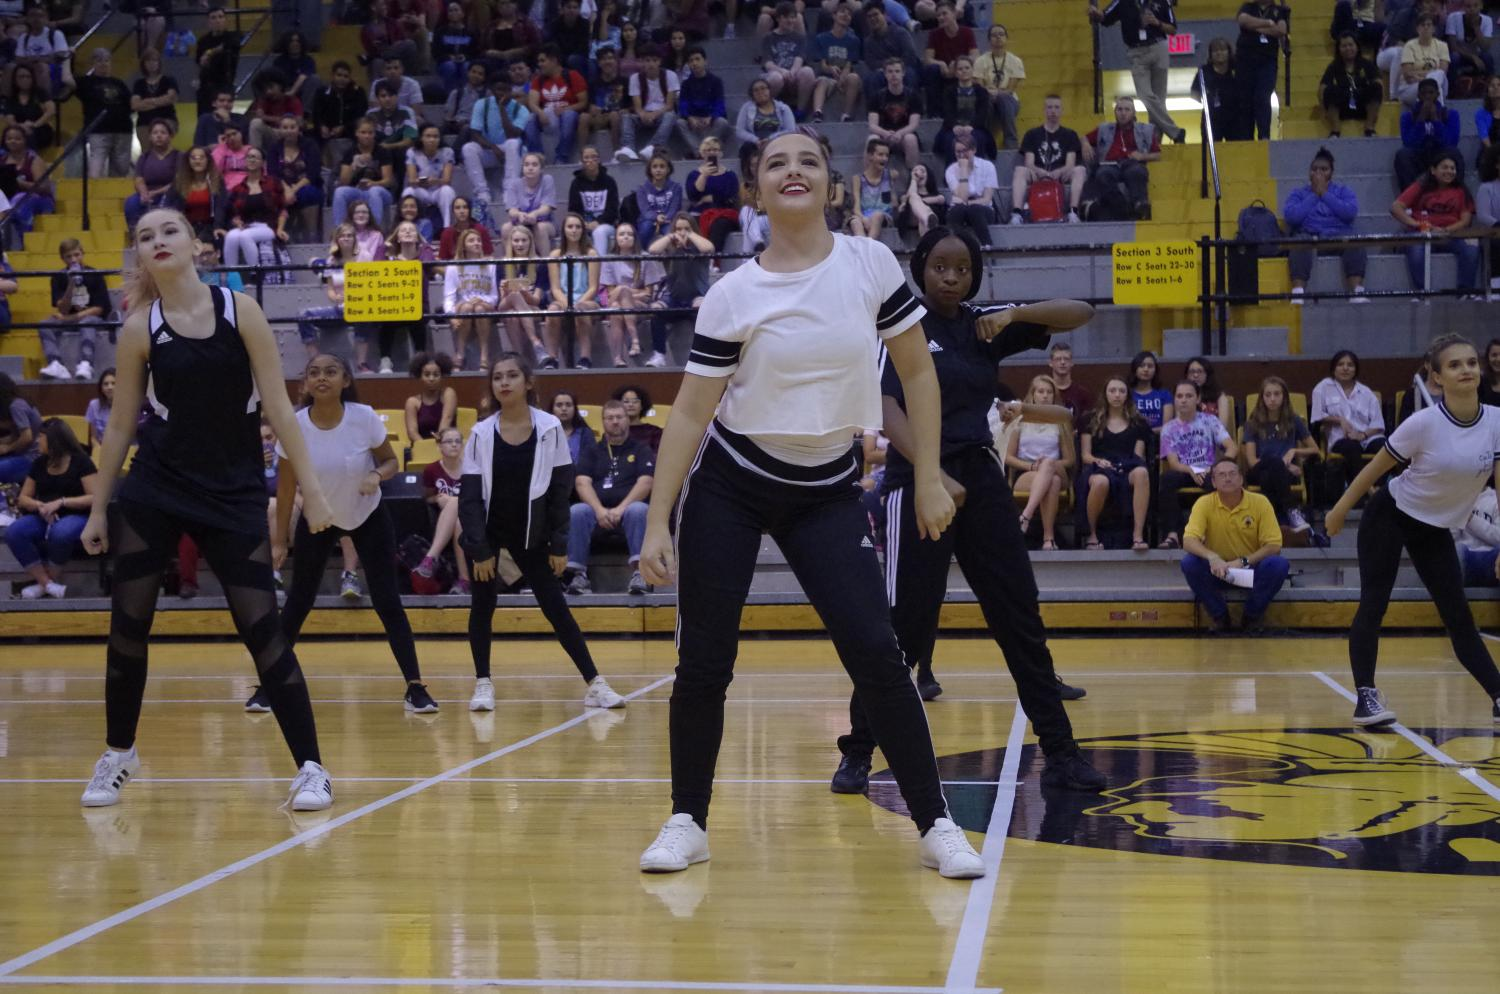 The dance team performs at the pep rally.